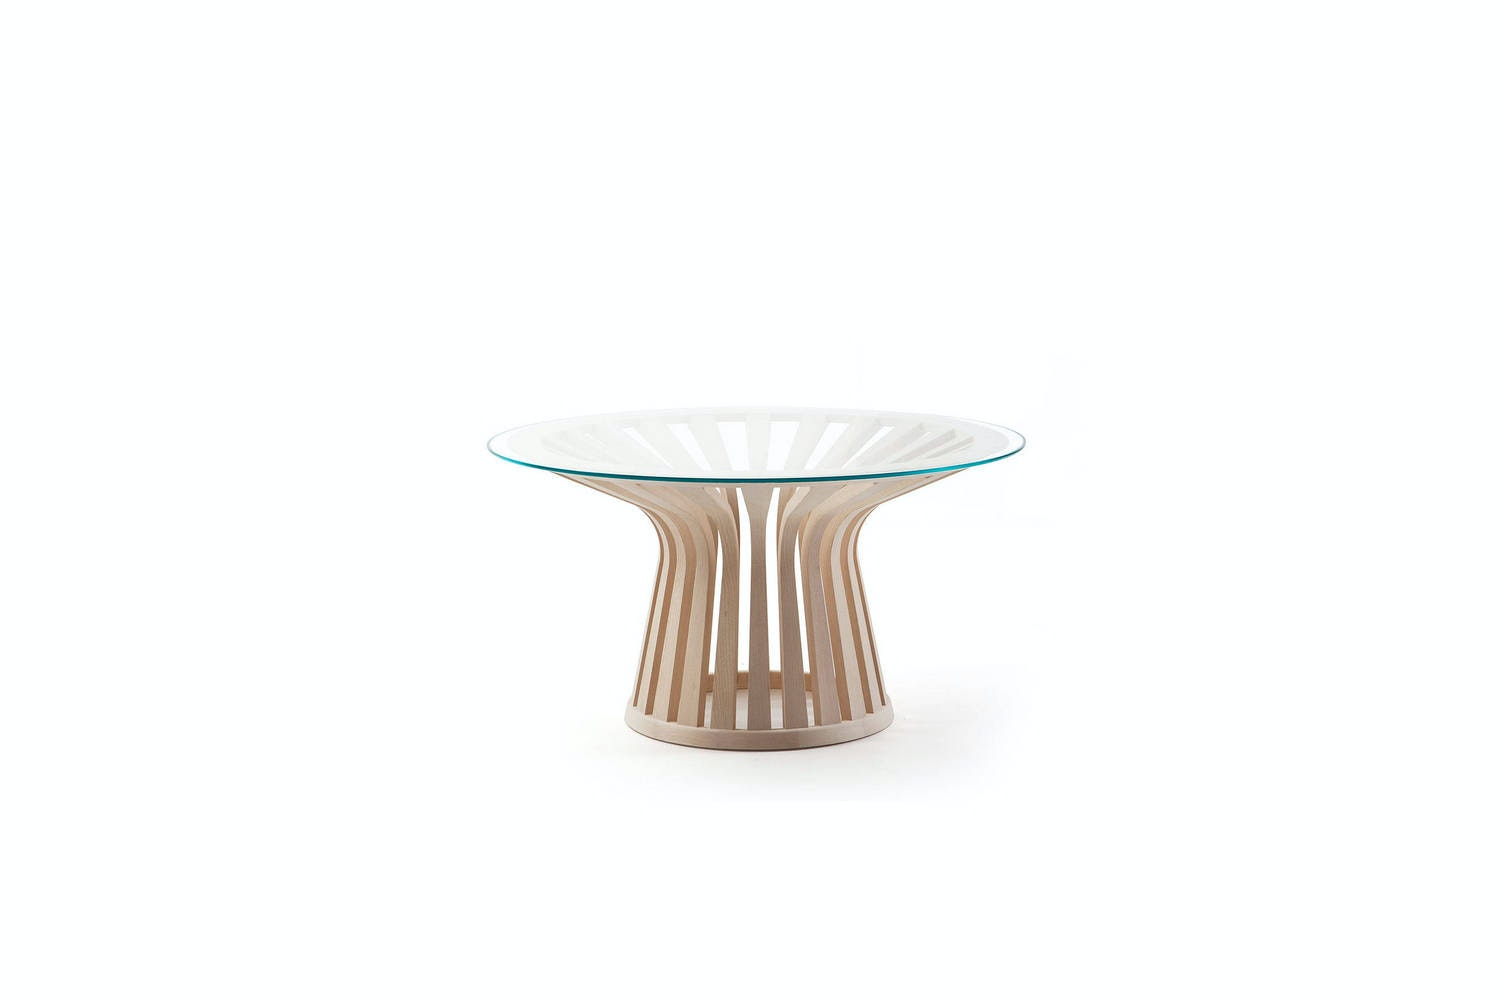 390 Lebeau Wood Table by Patrick Jouin for Cassina